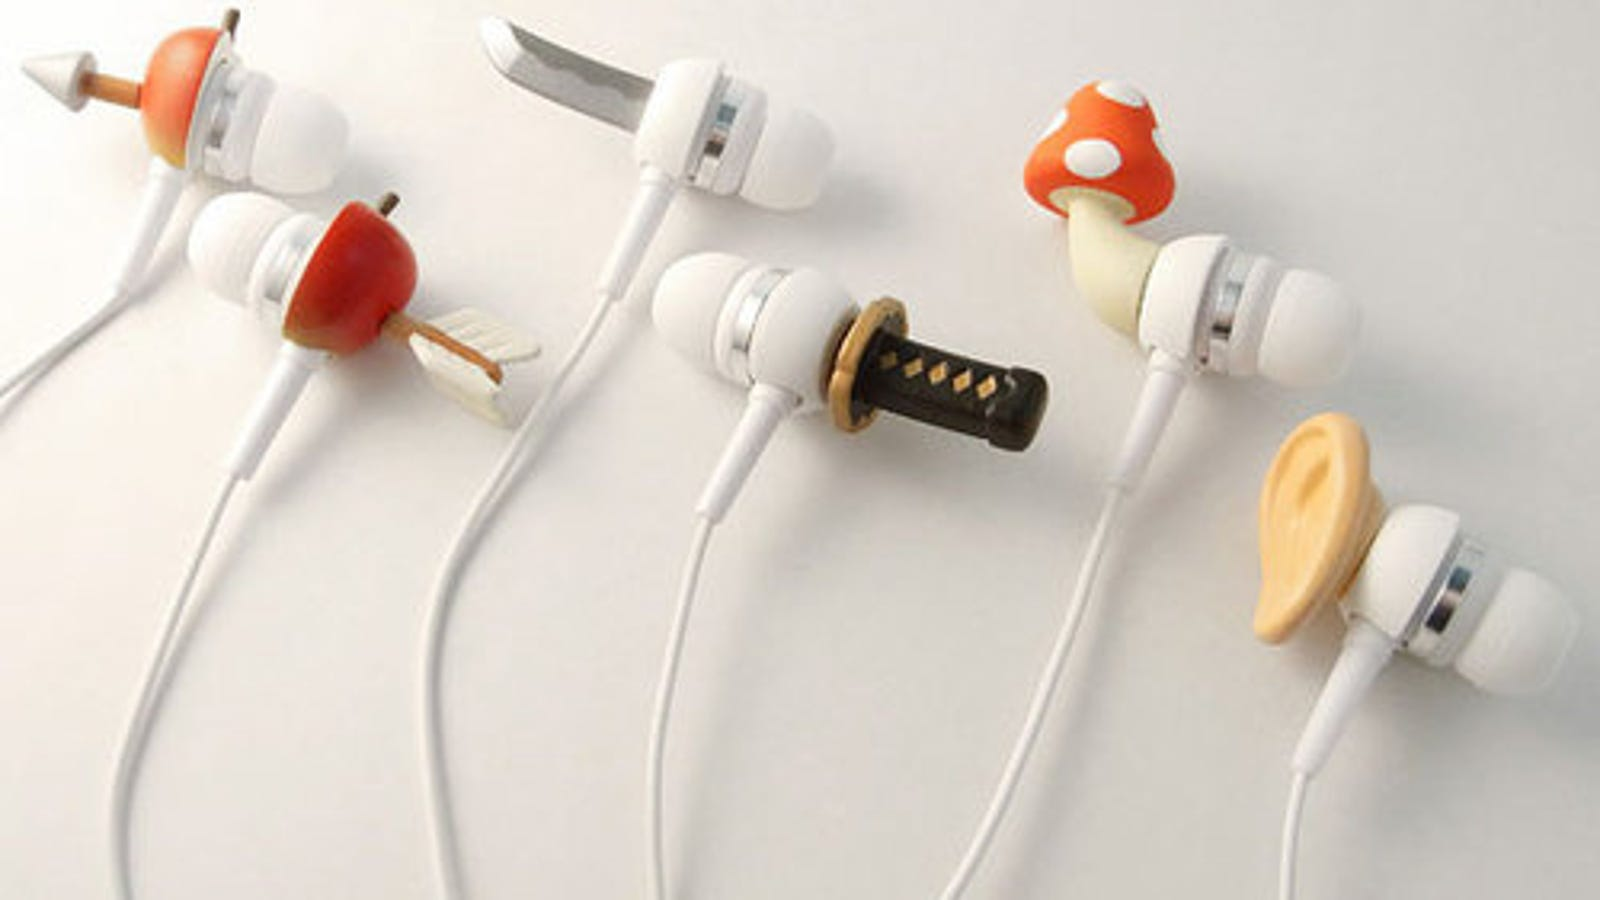 earplugs adapters for wireless earphones